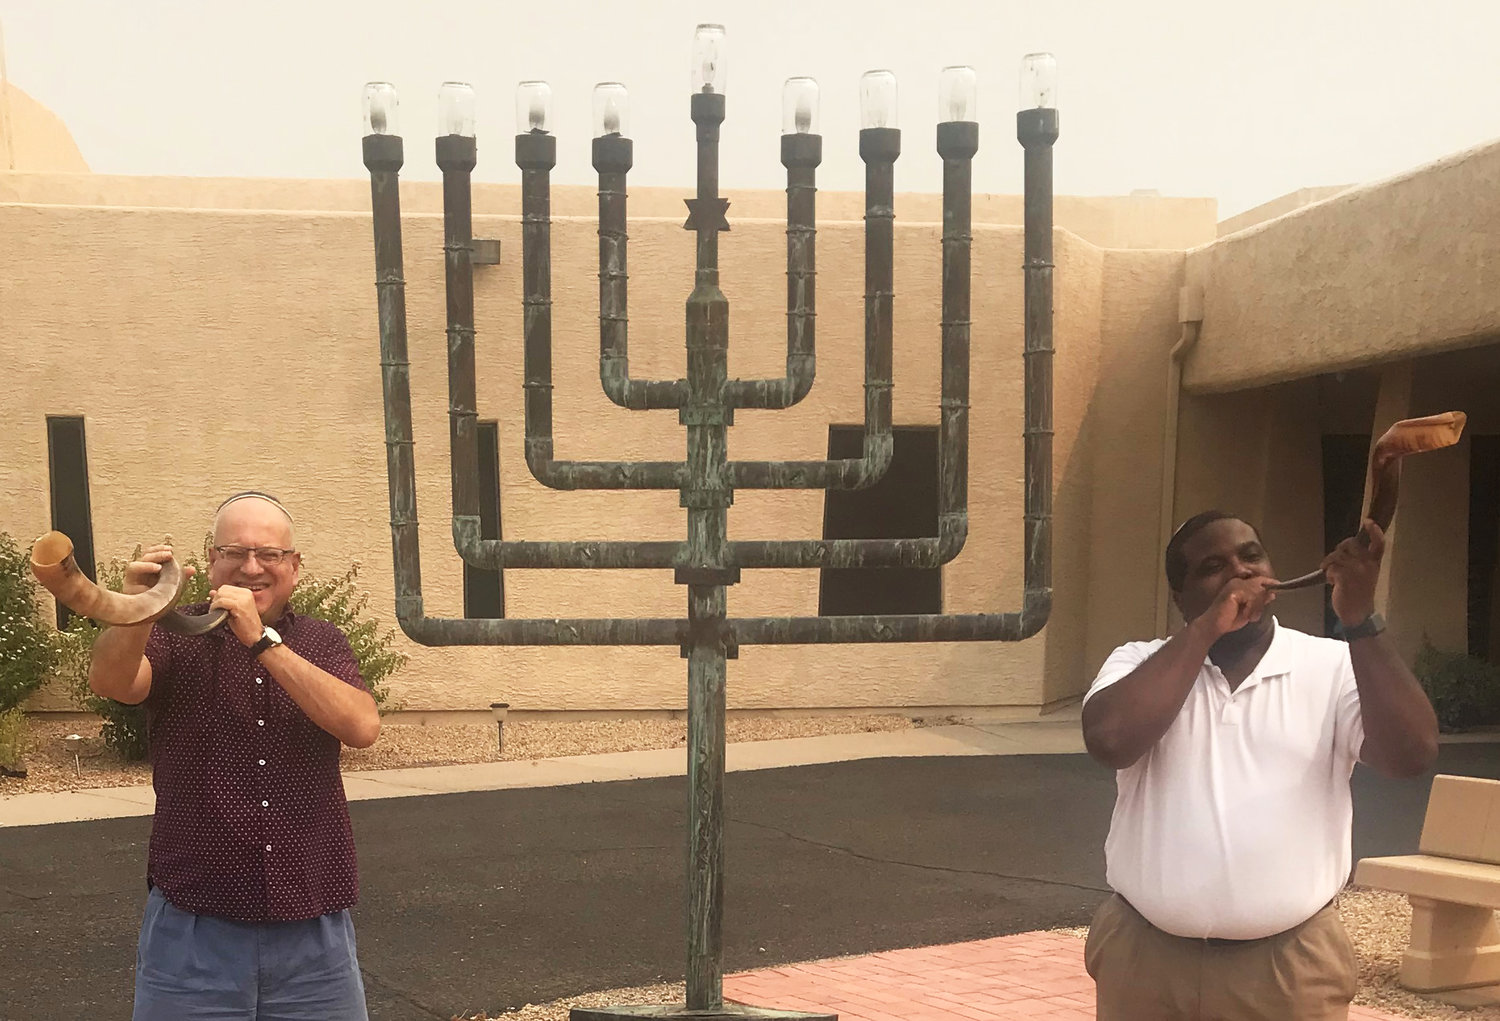 Rabbi Kaplan, left, and Andre Ivory practice blowing the shofar (ram's horn) while social distancing outside at Temple Beth Shalom in Sun City.